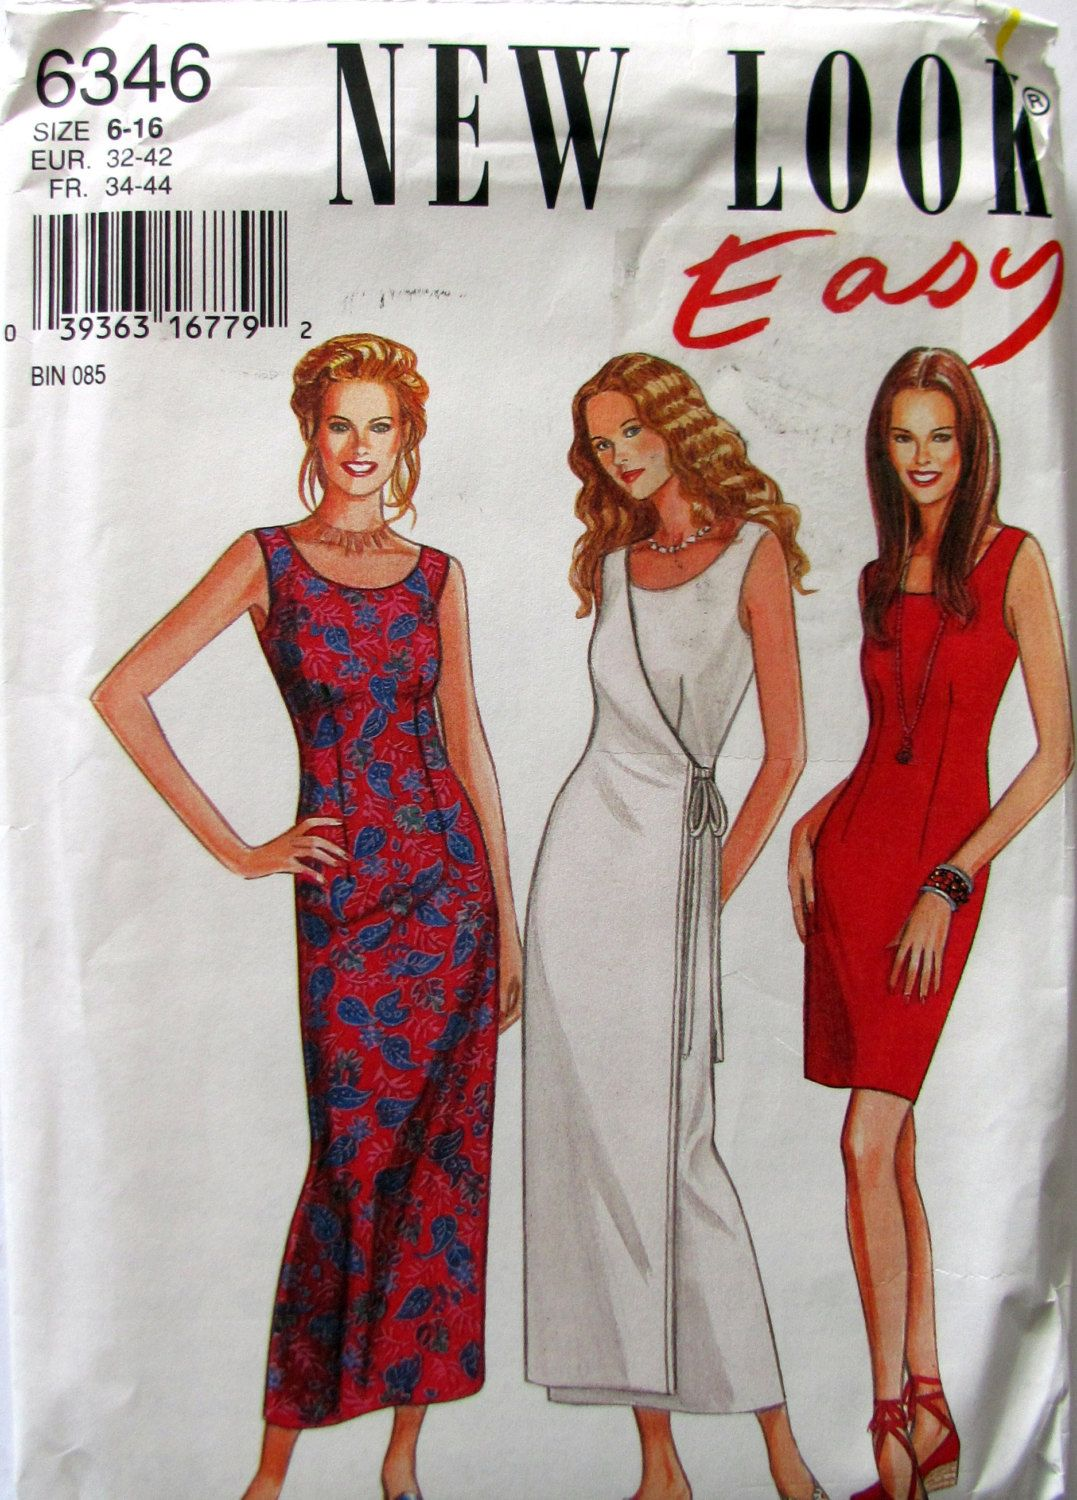 New look above ankle wrap dress fitted bodice and long or